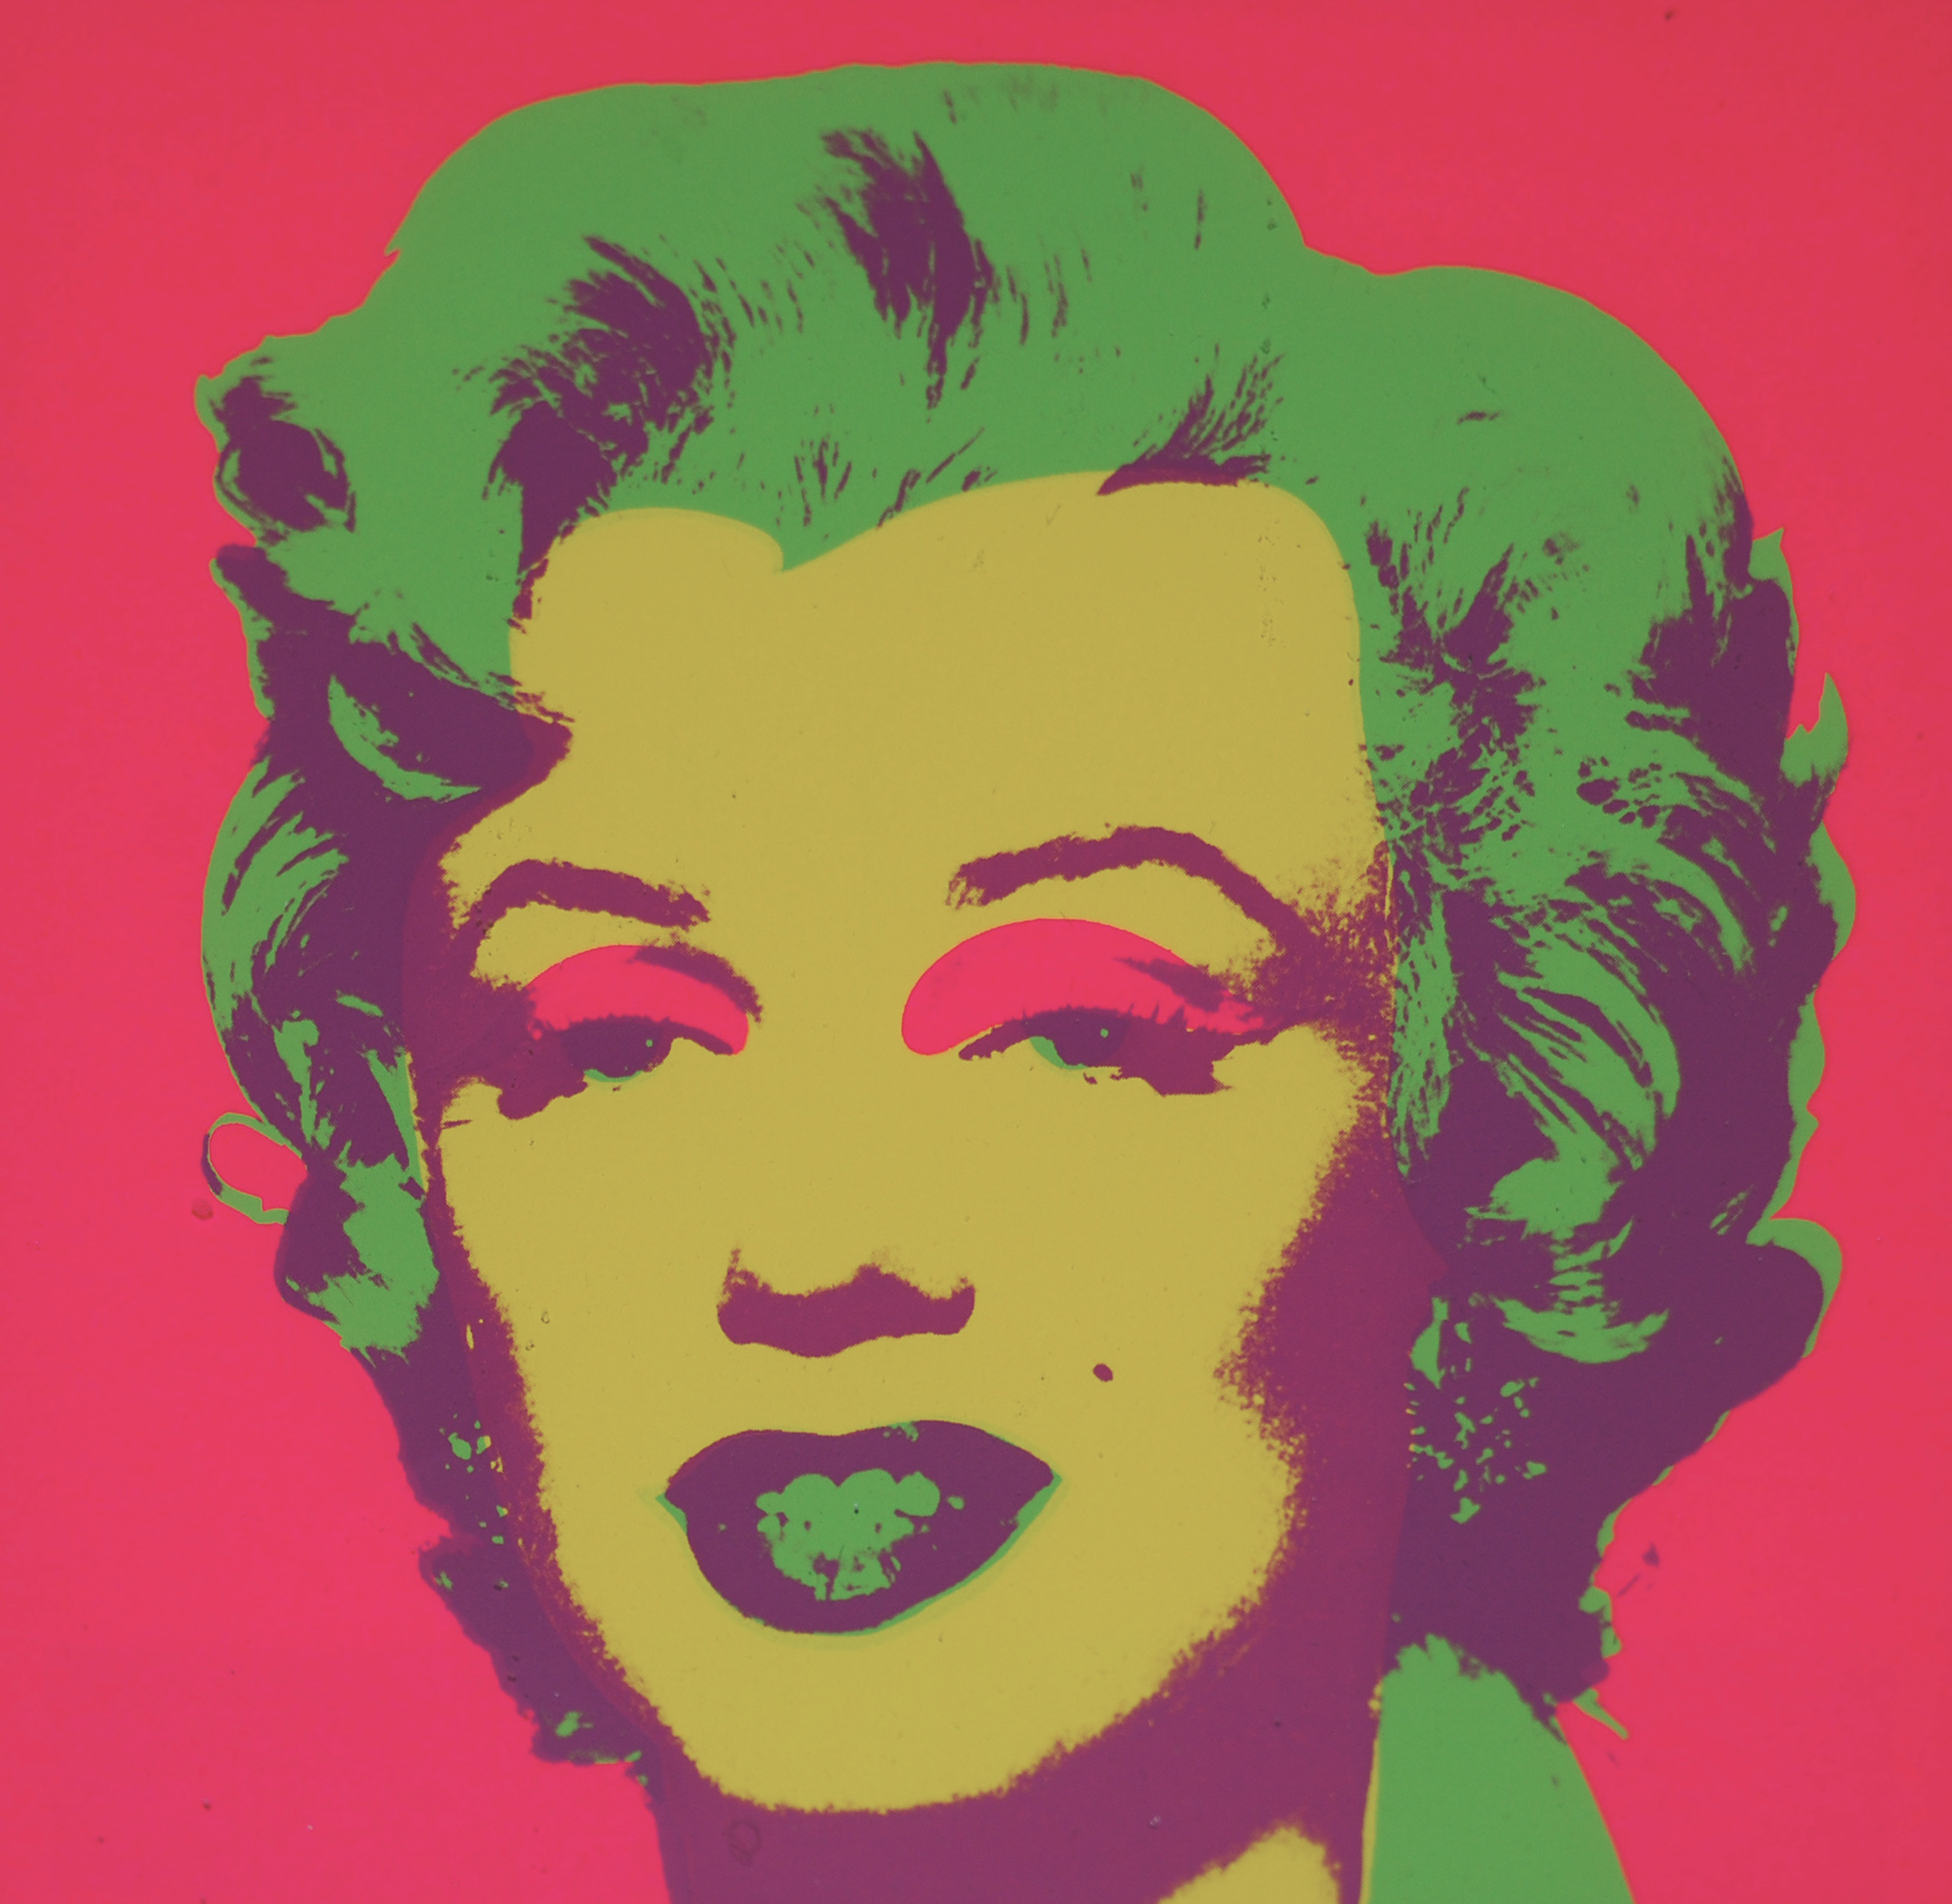 marilyn monroe 21 by andy warhol guy hepner. Black Bedroom Furniture Sets. Home Design Ideas